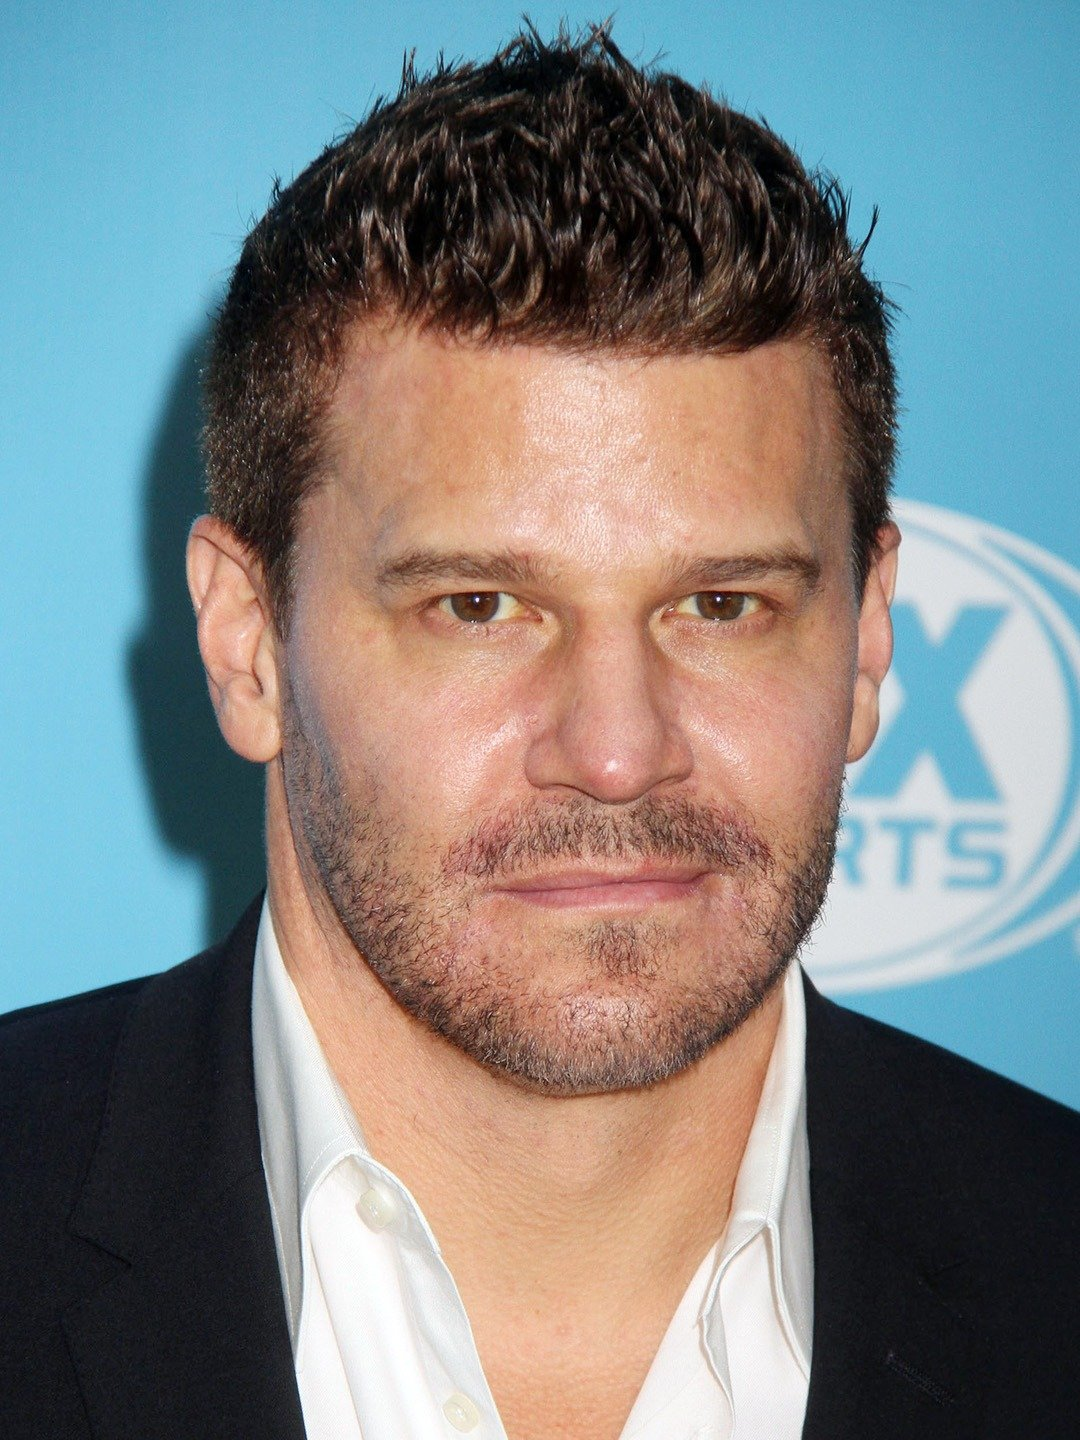 Image result for David boreanaz